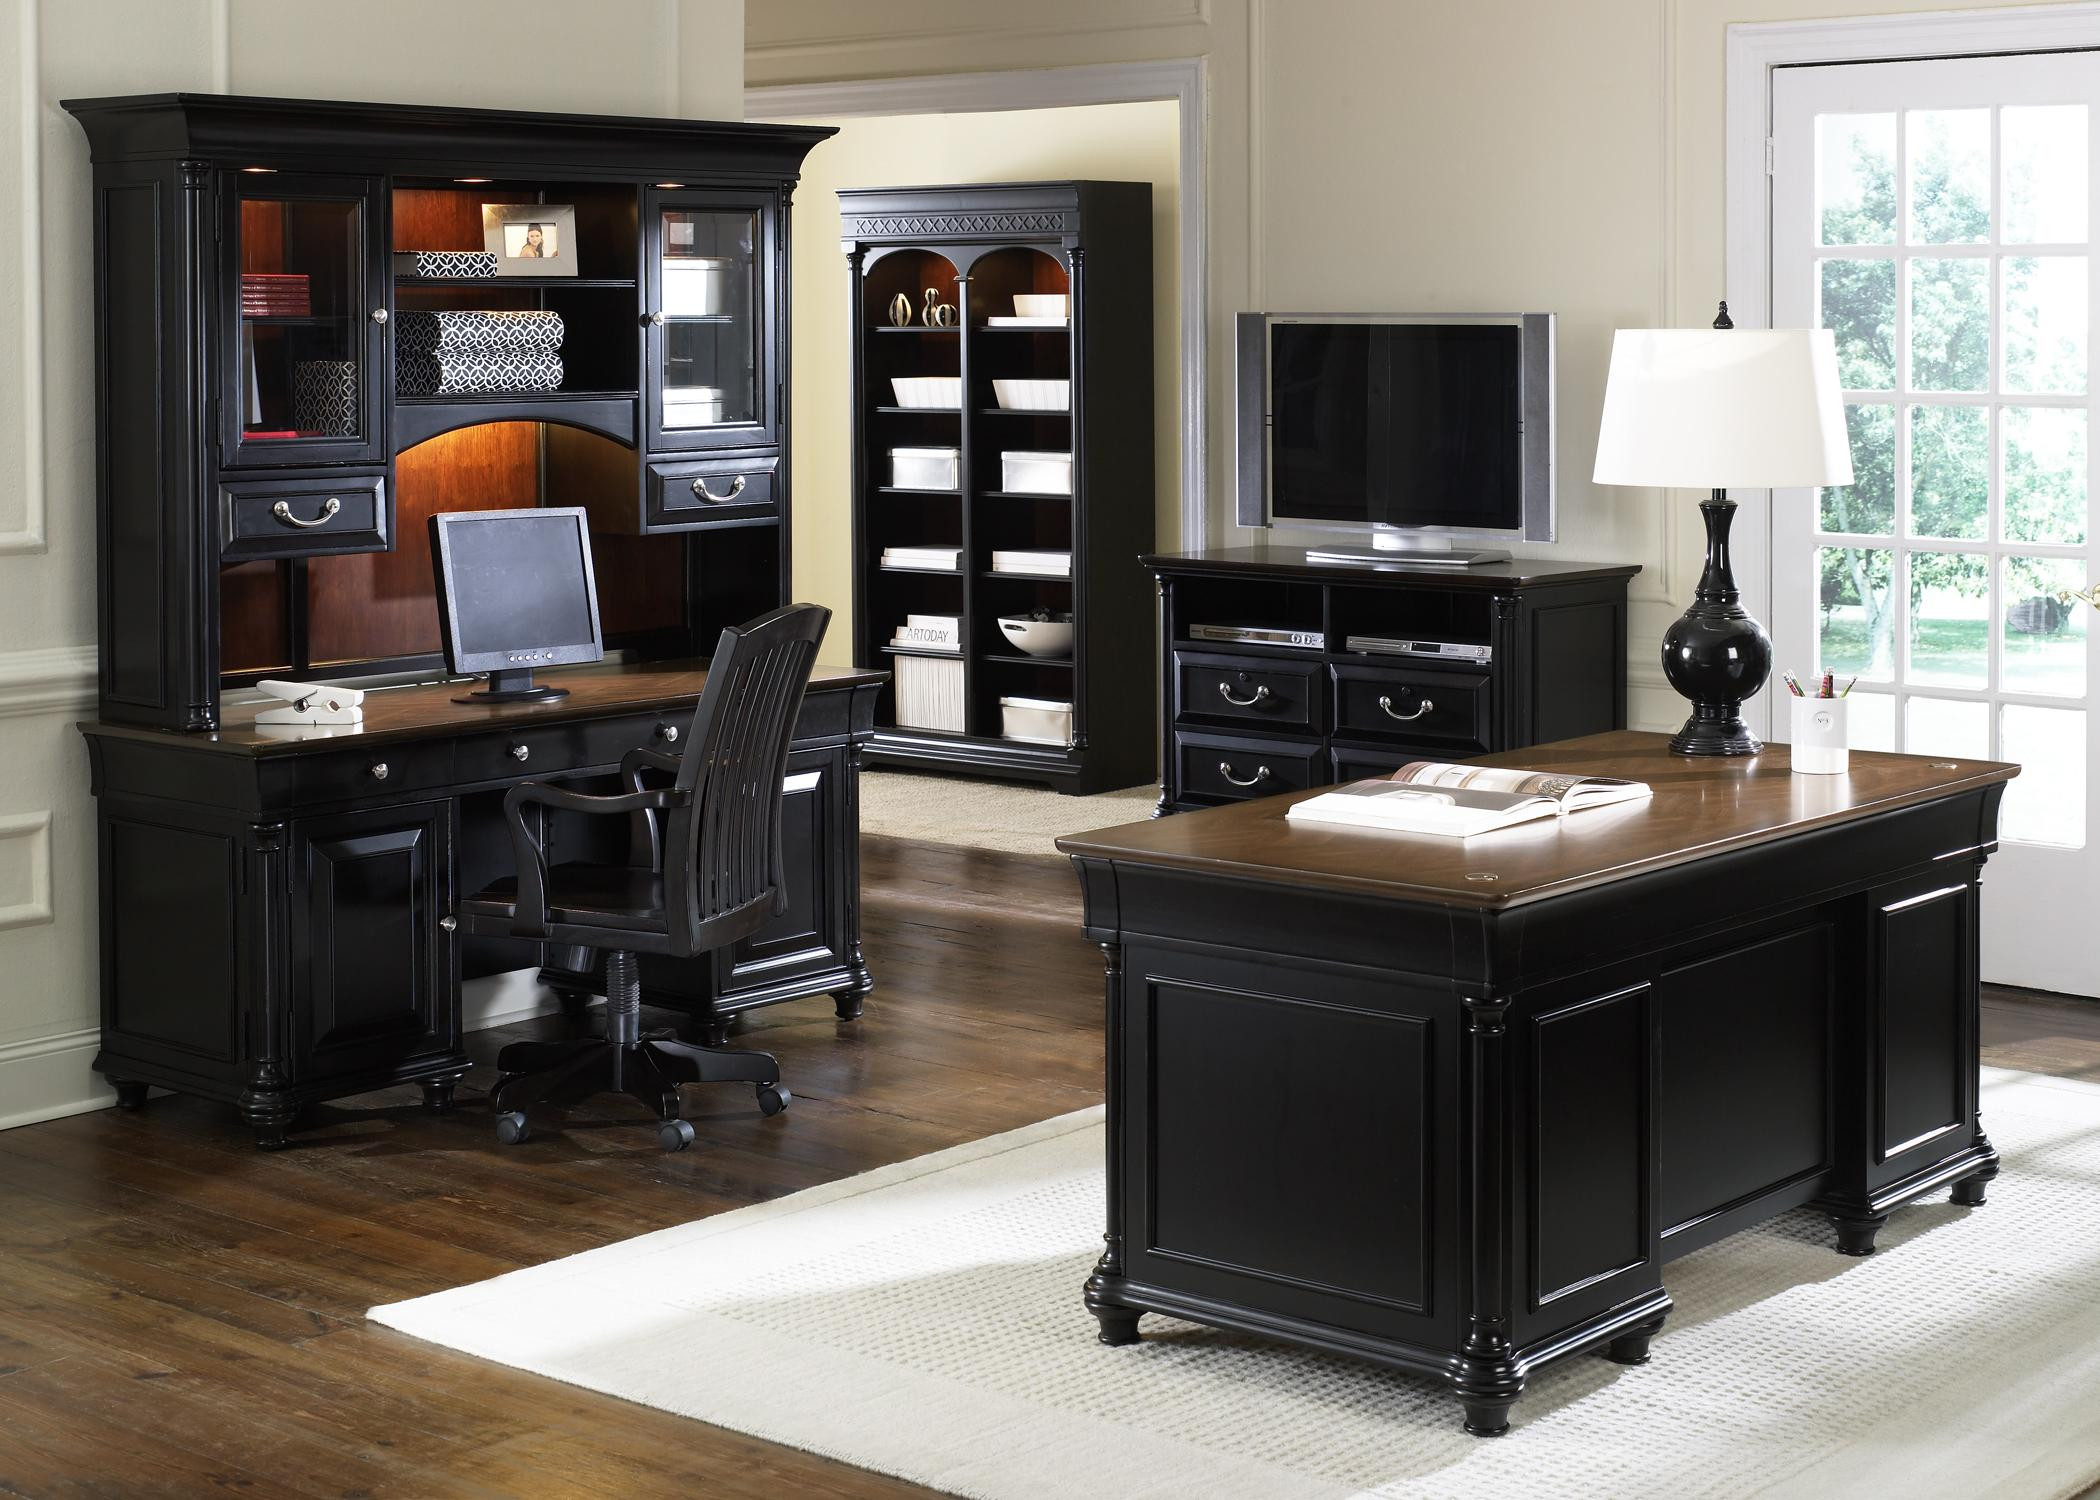 Jr Executive Double Pedestal Desk By Liberty Furniture